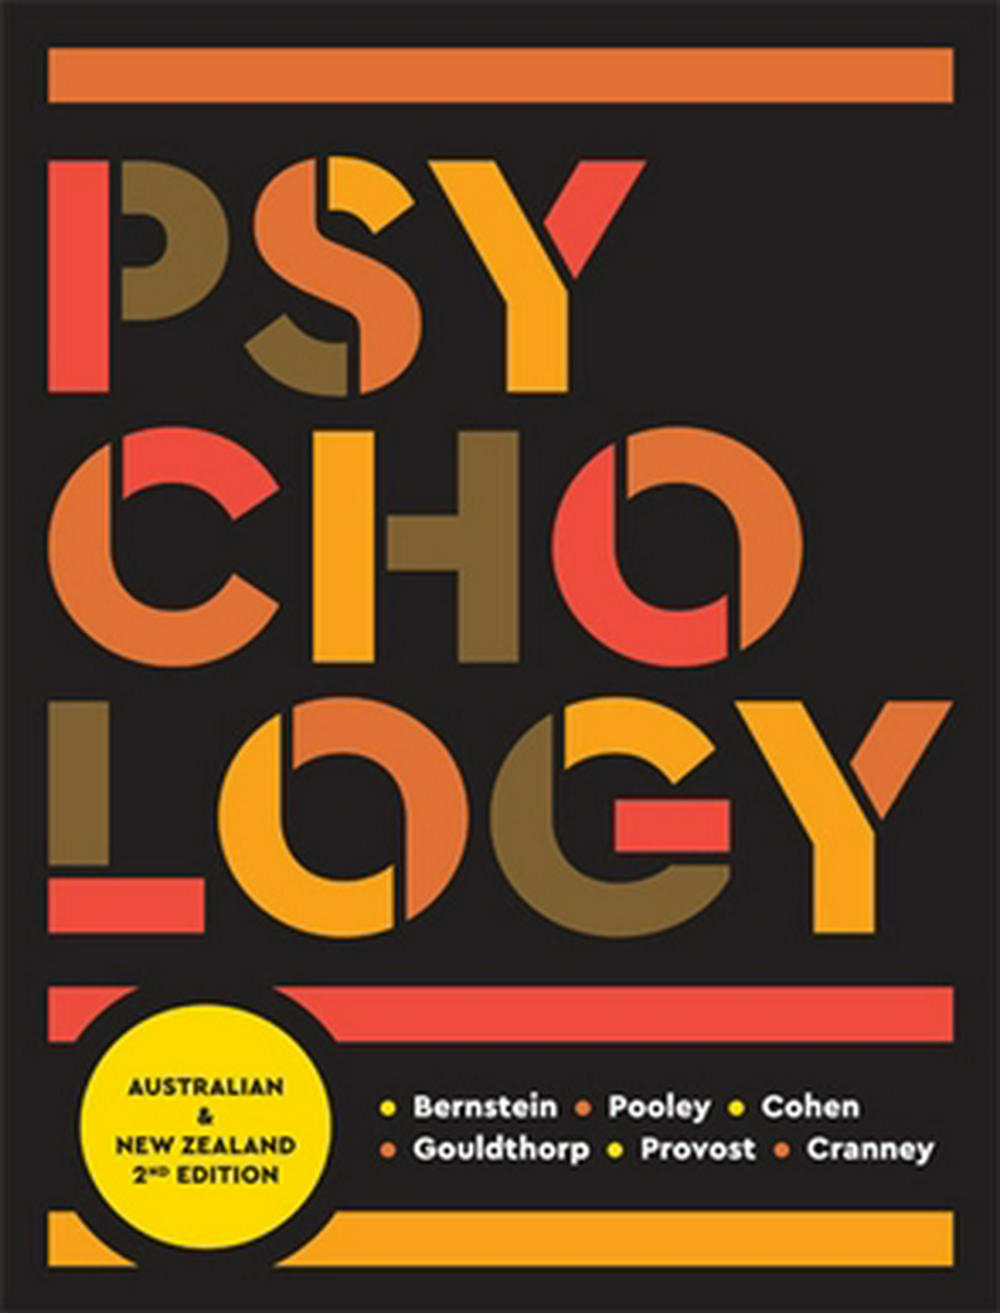 Psychology with Student Resource Access 12 Months: Australia and New Zealand 2nd Edition by Douglas A. Bernstein,Julie Ann Pooley,Lynne Cohen,Bethanie Gouldthorp,Stephen Provost, ISBN: 9780170386302